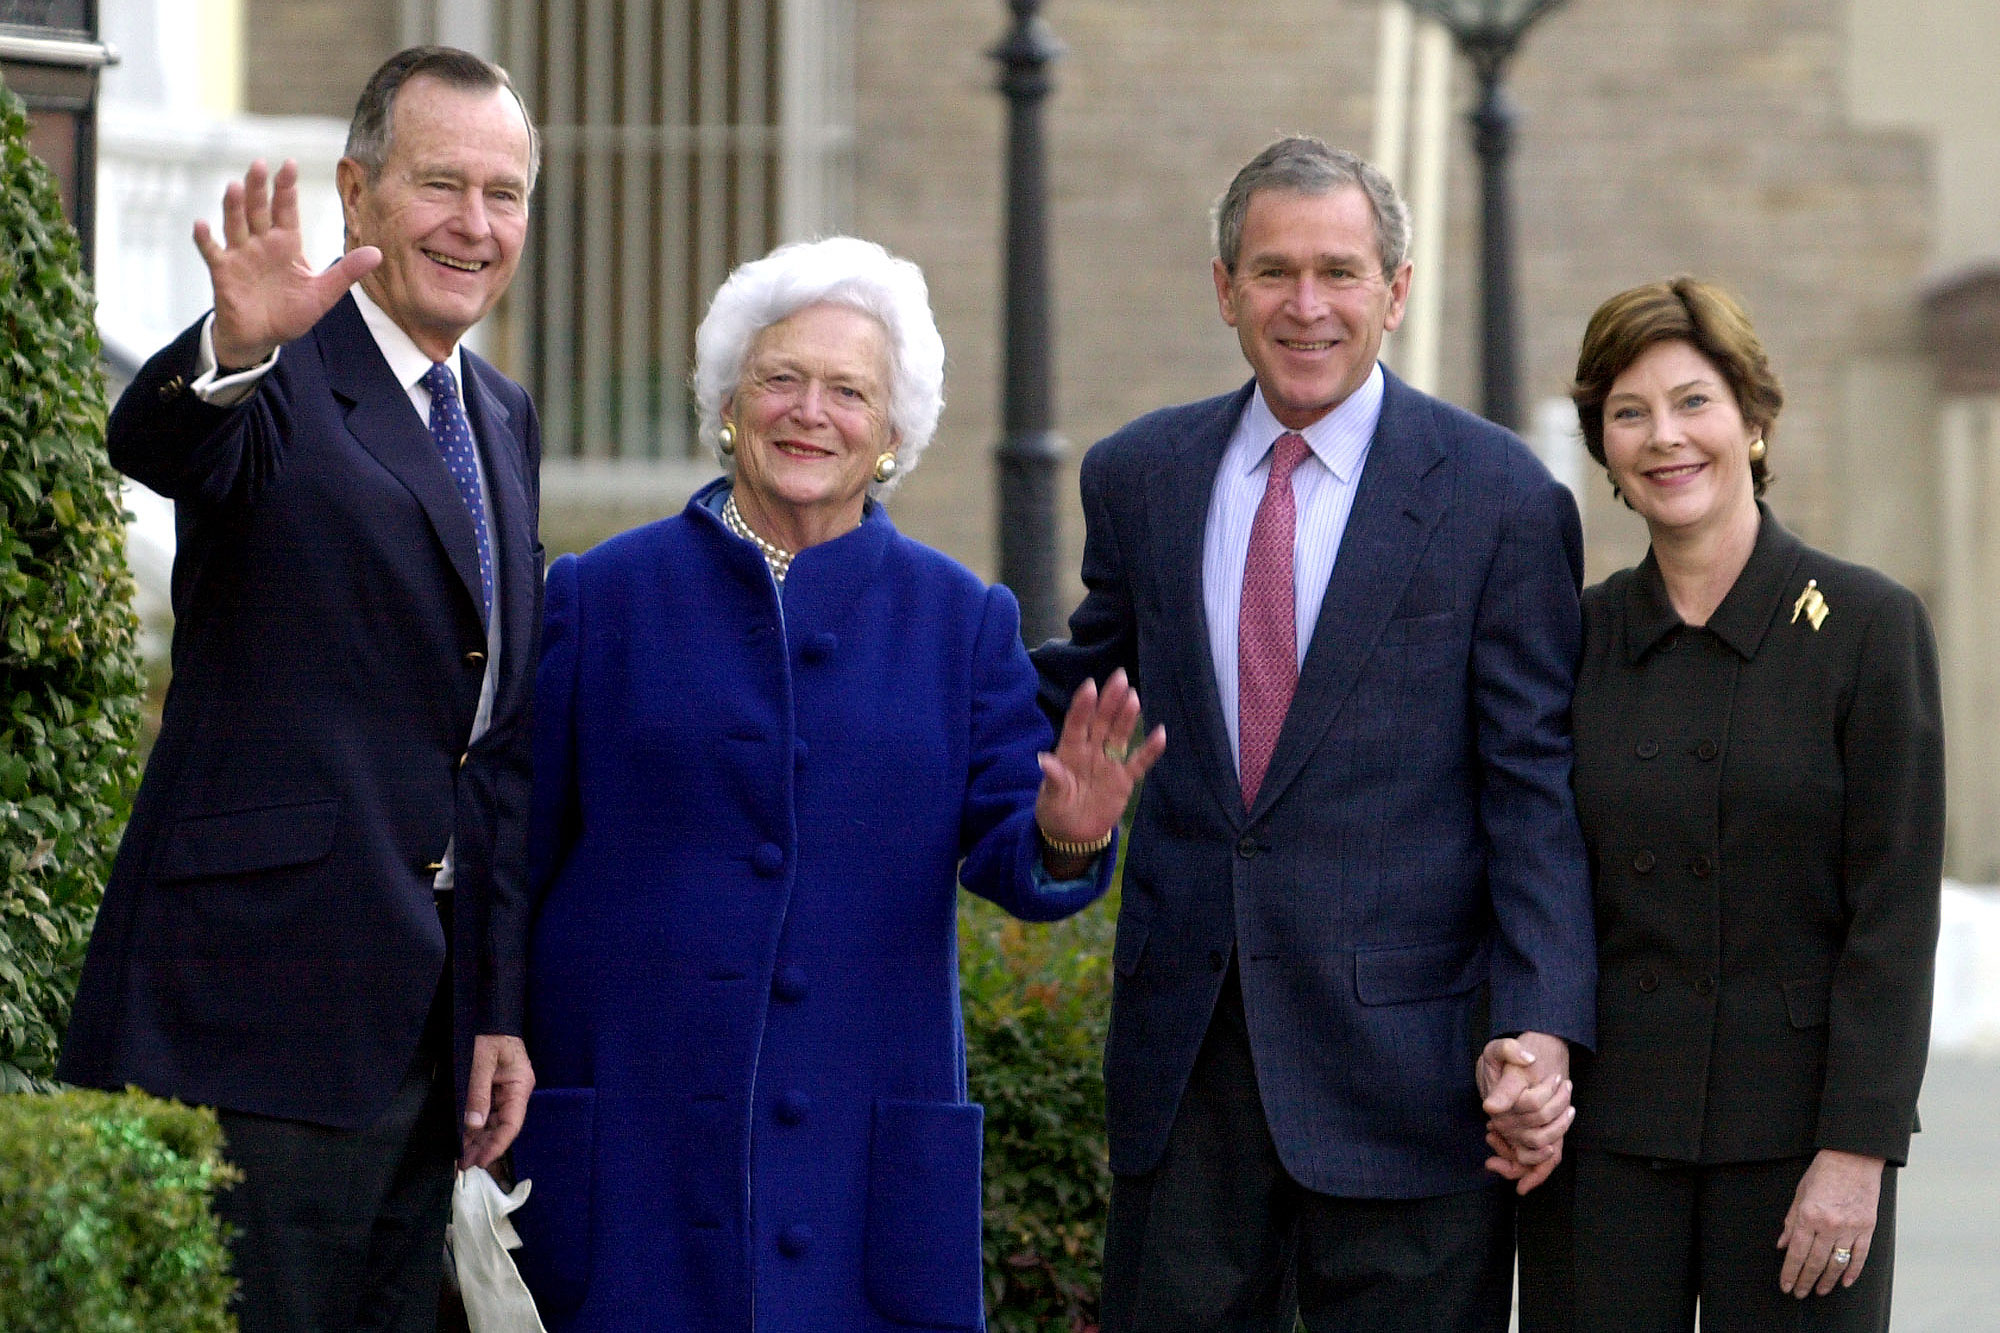 President Bush, second right, and first lady Laura Bush, right, leave Saint John's Church in Washington, Sunday, Jan 27, 2002, with former President George H. W. Bush and former first lady Barbara Bush after attending Sunday service. President Bush will deliver his first State of the Union address on Tuesday. (AP Photo/Susan Walsh)